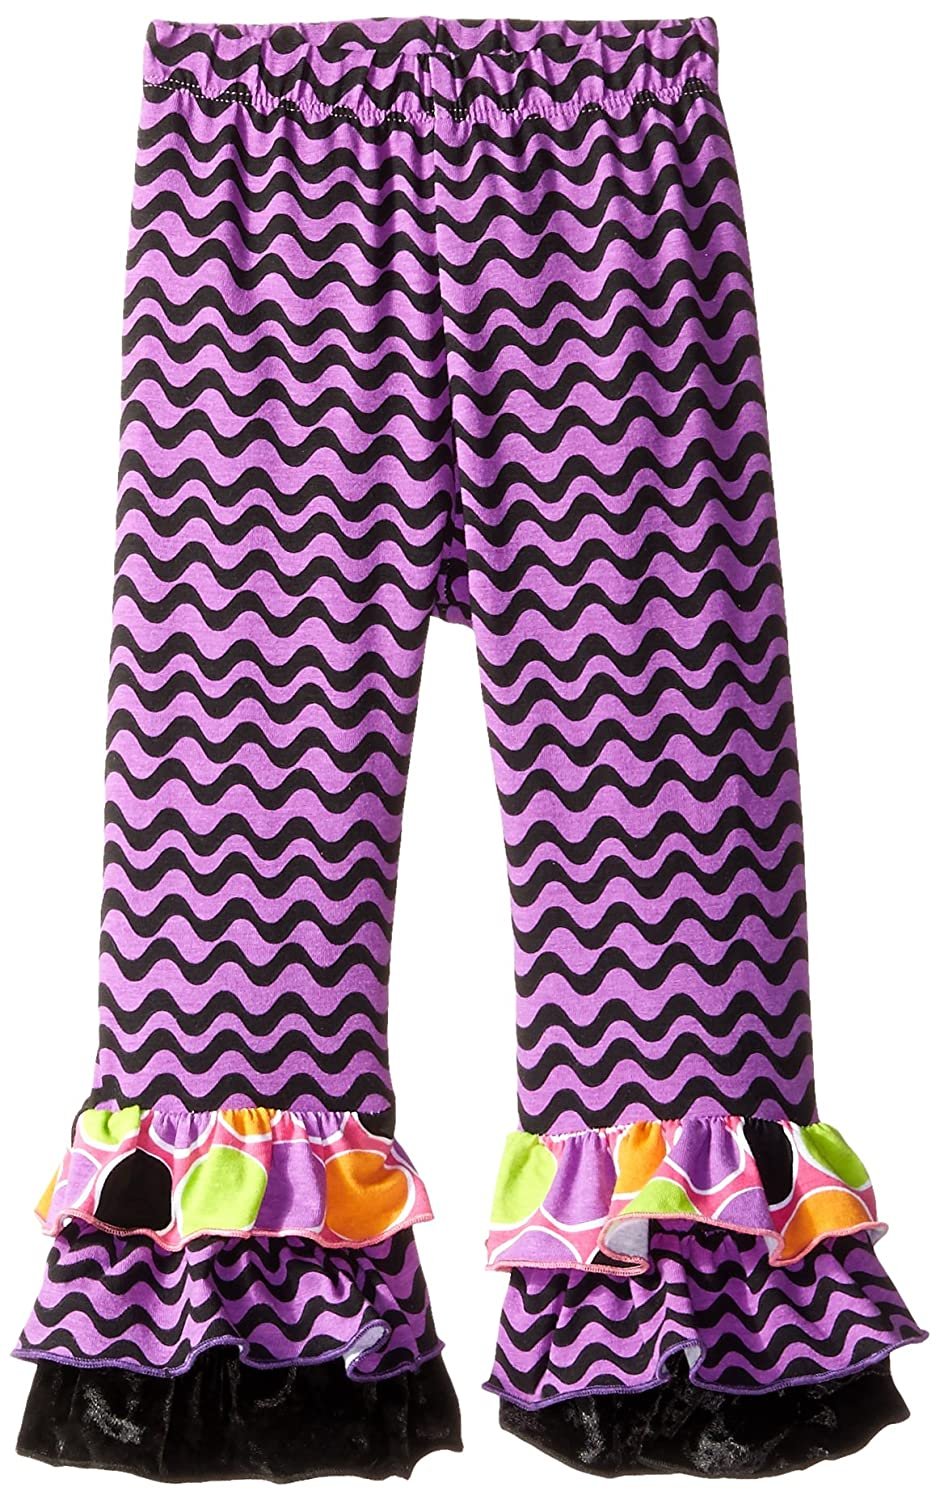 Wisteria Waves Flap Happy Baby Girls Triple Ruffle Pant 18 Months